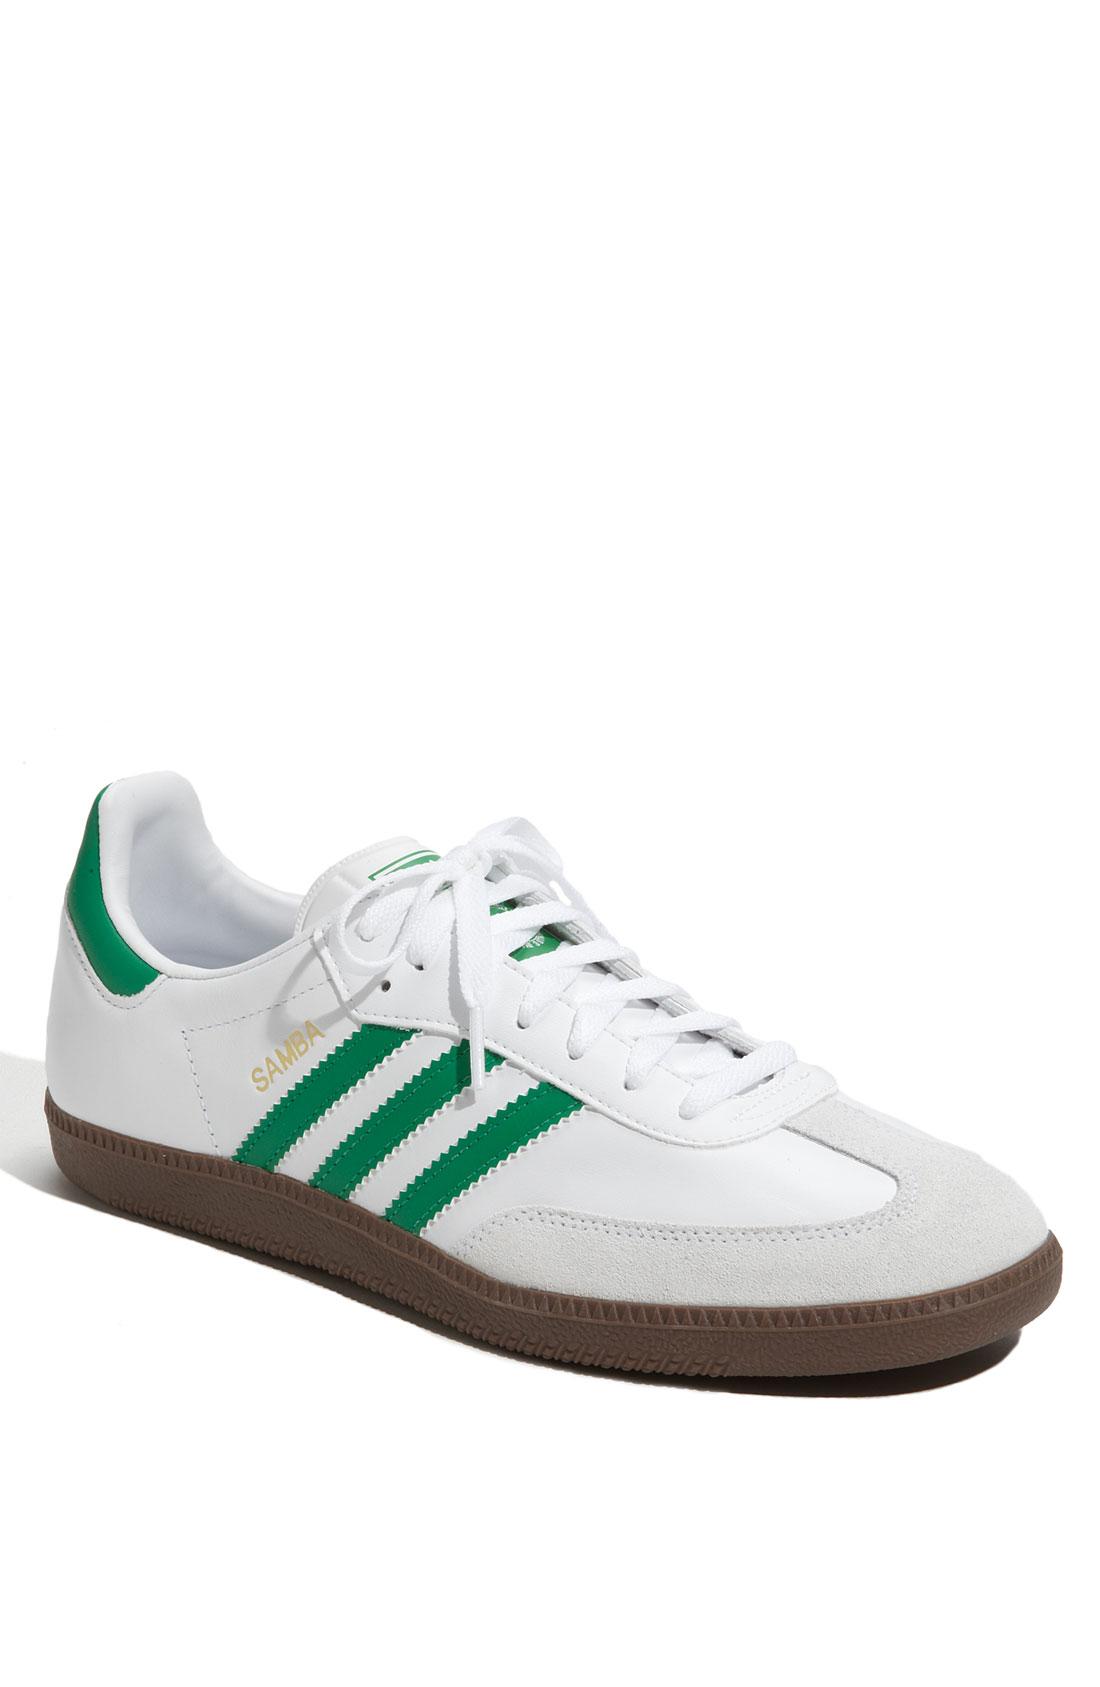 adidas samba sneaker green in green for men lyst. Black Bedroom Furniture Sets. Home Design Ideas